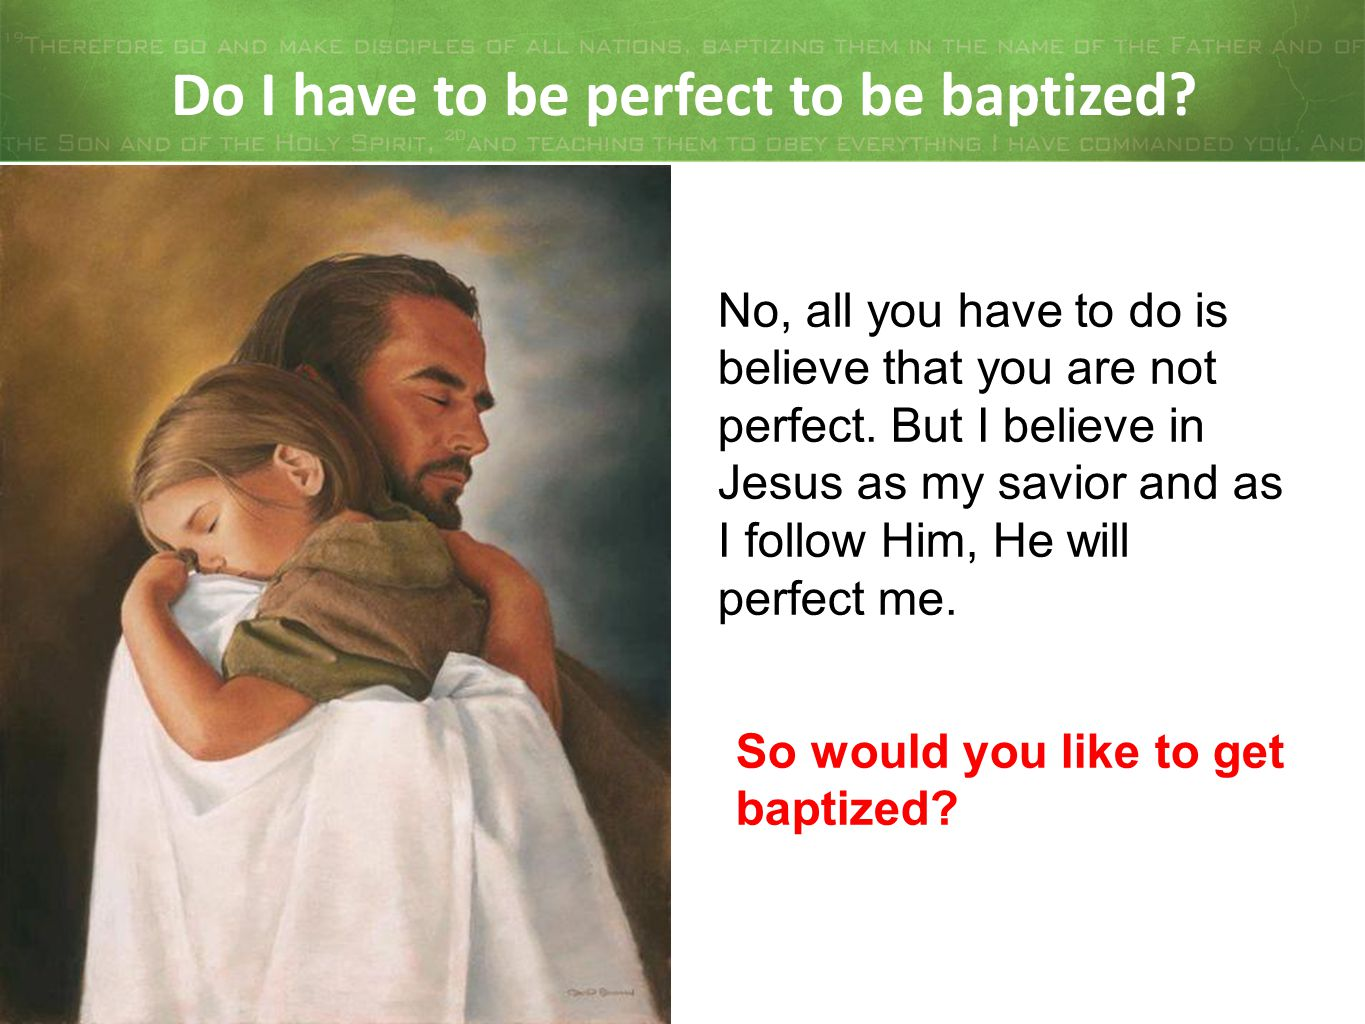 Do I have to be perfect to be baptized